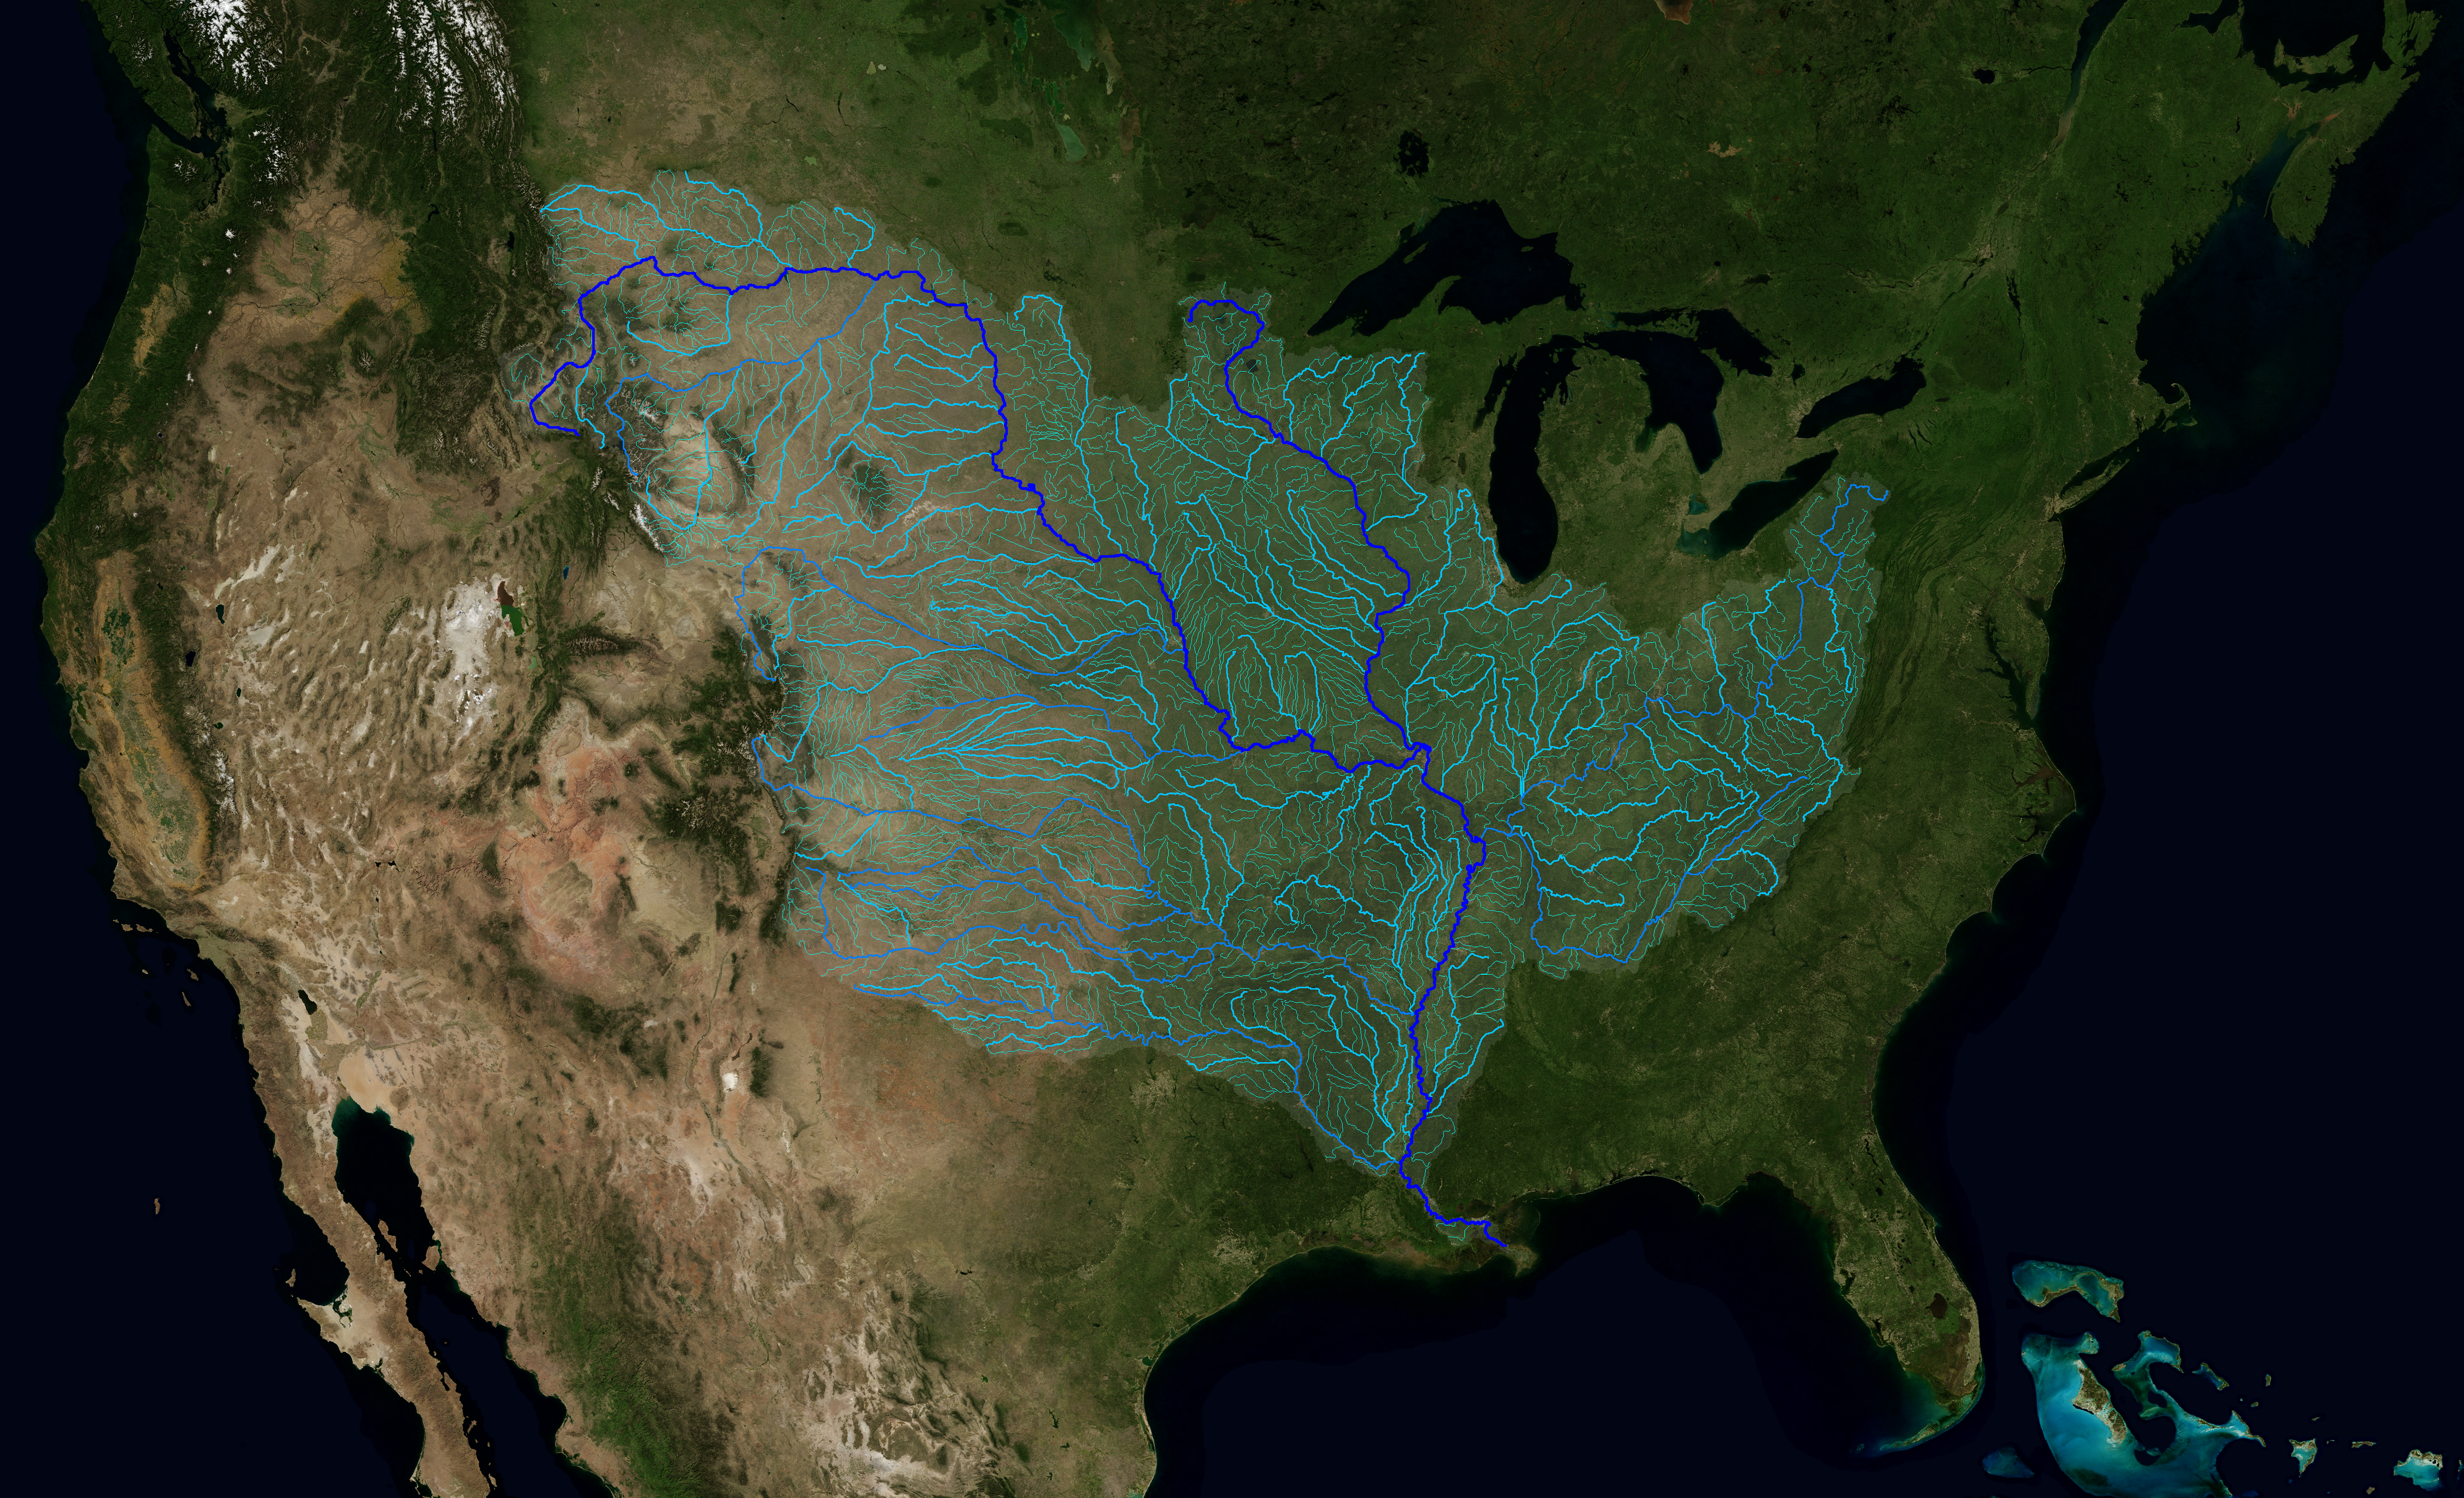 SVS The Rivers Of The Mississippi Watershed - Rivers of